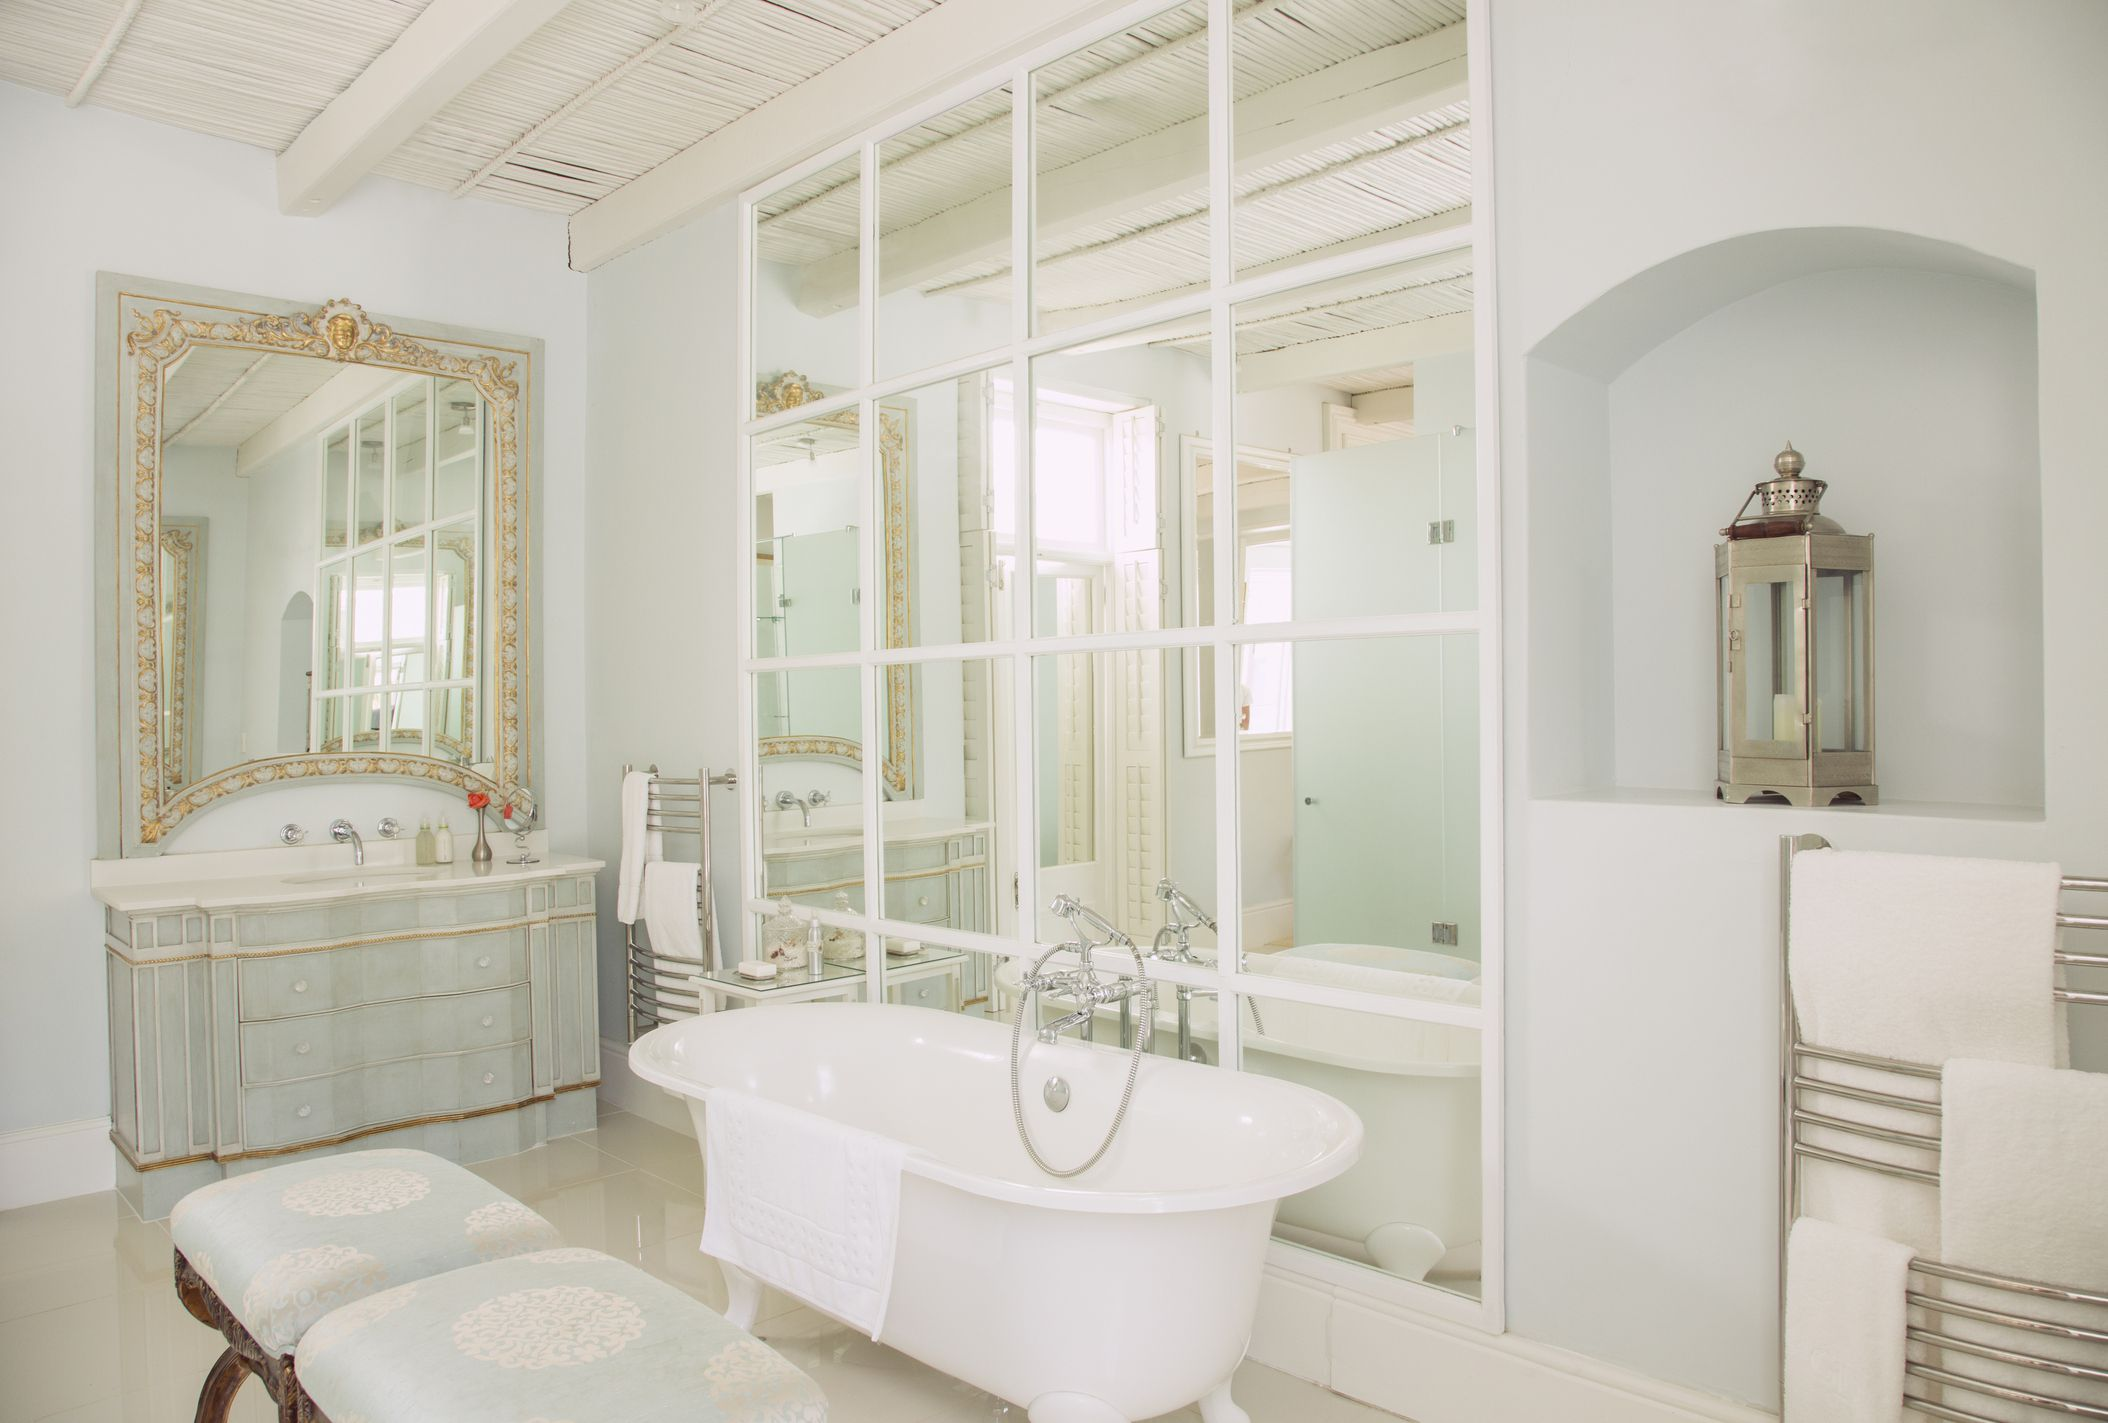 Essential Tips for an Elegant Bathroom Design